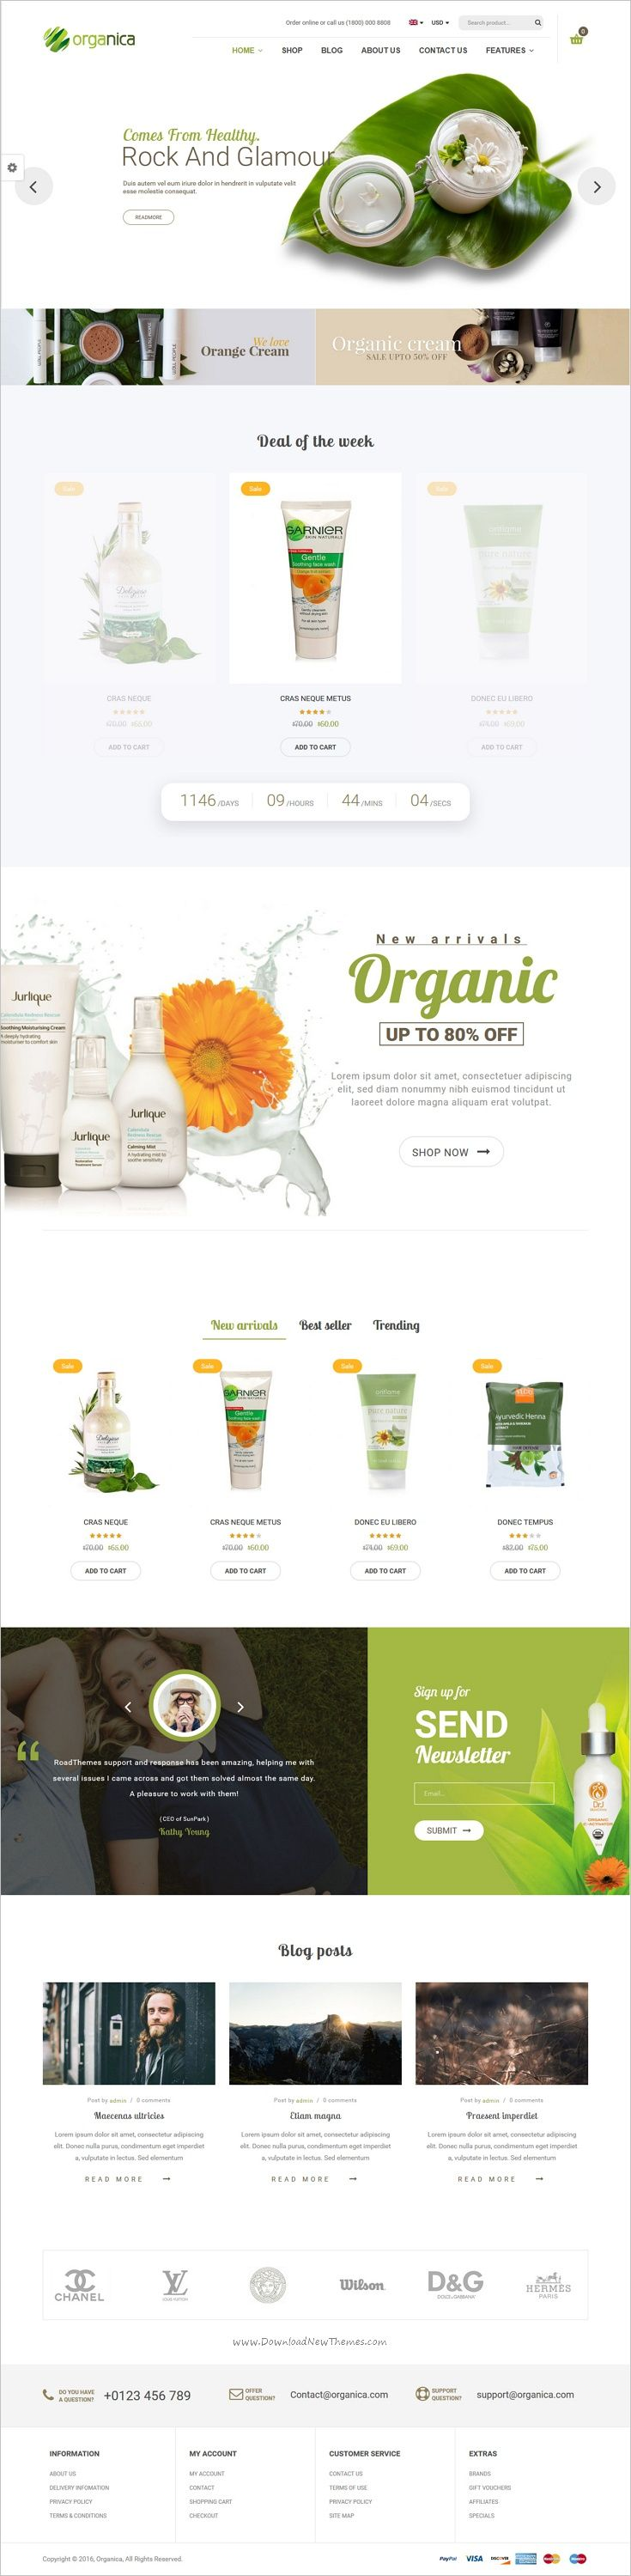 Orgnica is beautifully design responsive 6in1 #WordPress theme for #organic, beauty, #cosmetics or food farms eCommerce website download now➩ https://themeforest.net/item/organica-organic-beauty-natural-cosmetics-food-farn-and-eco-wordpress-theme/19055016?ref=Datasata